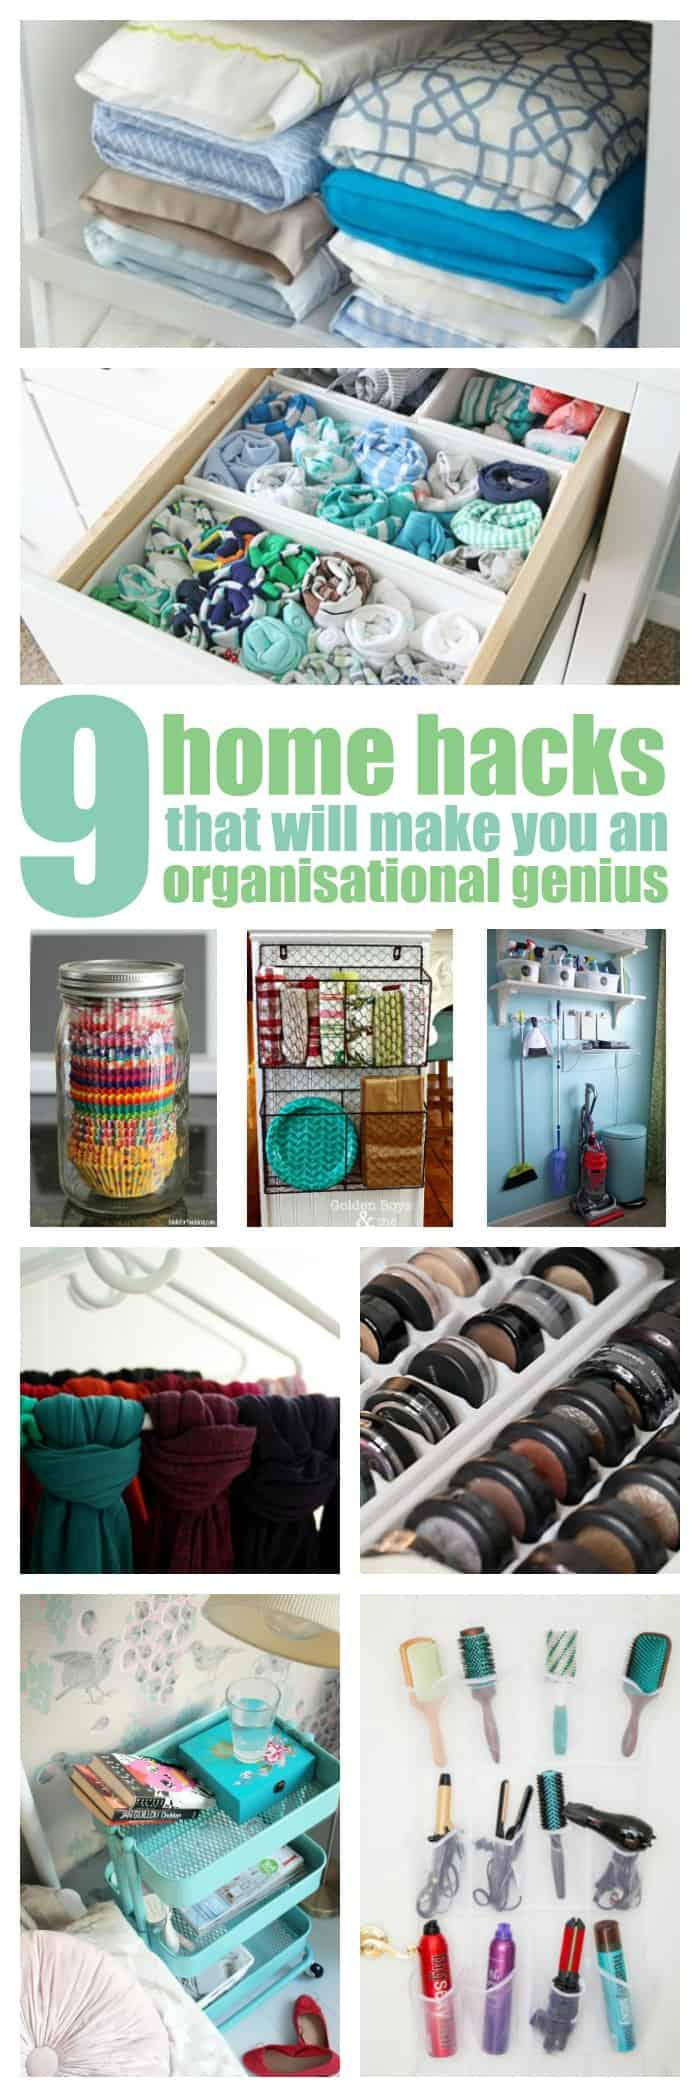 home-hacks-organisational-genius-pin